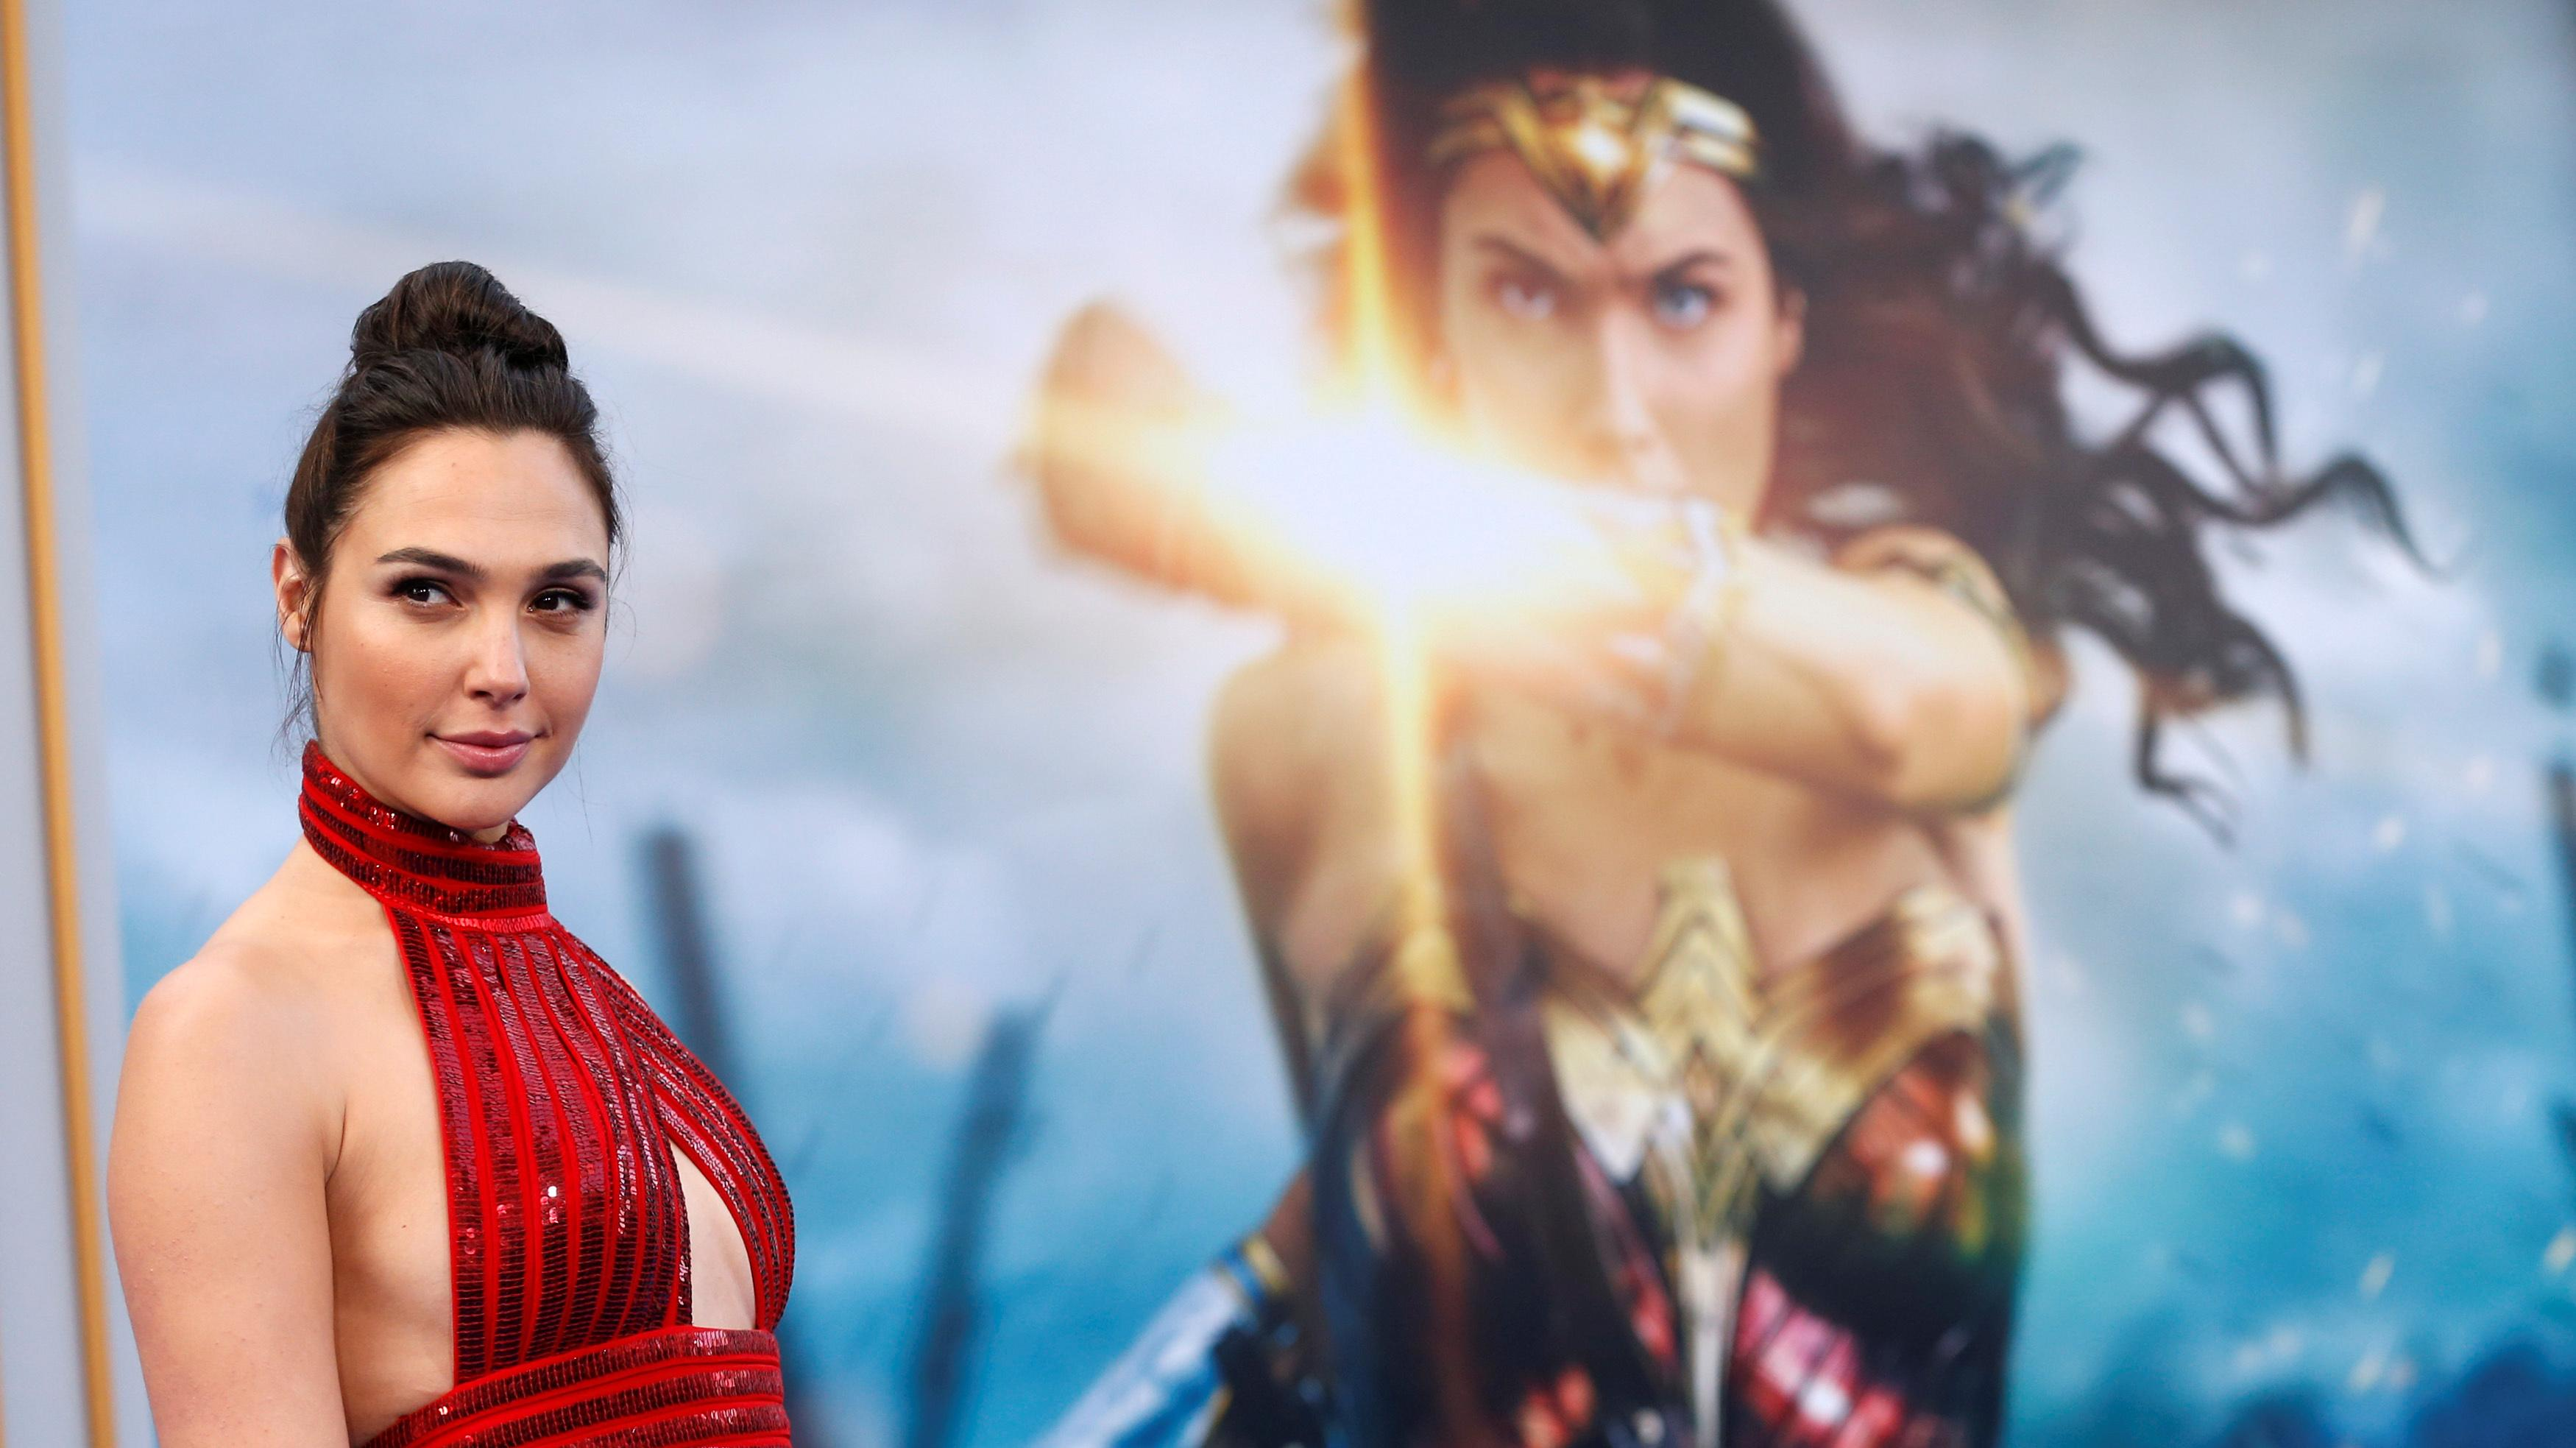 WONDER WOMAN Smashing Box Office With Captain In Tow